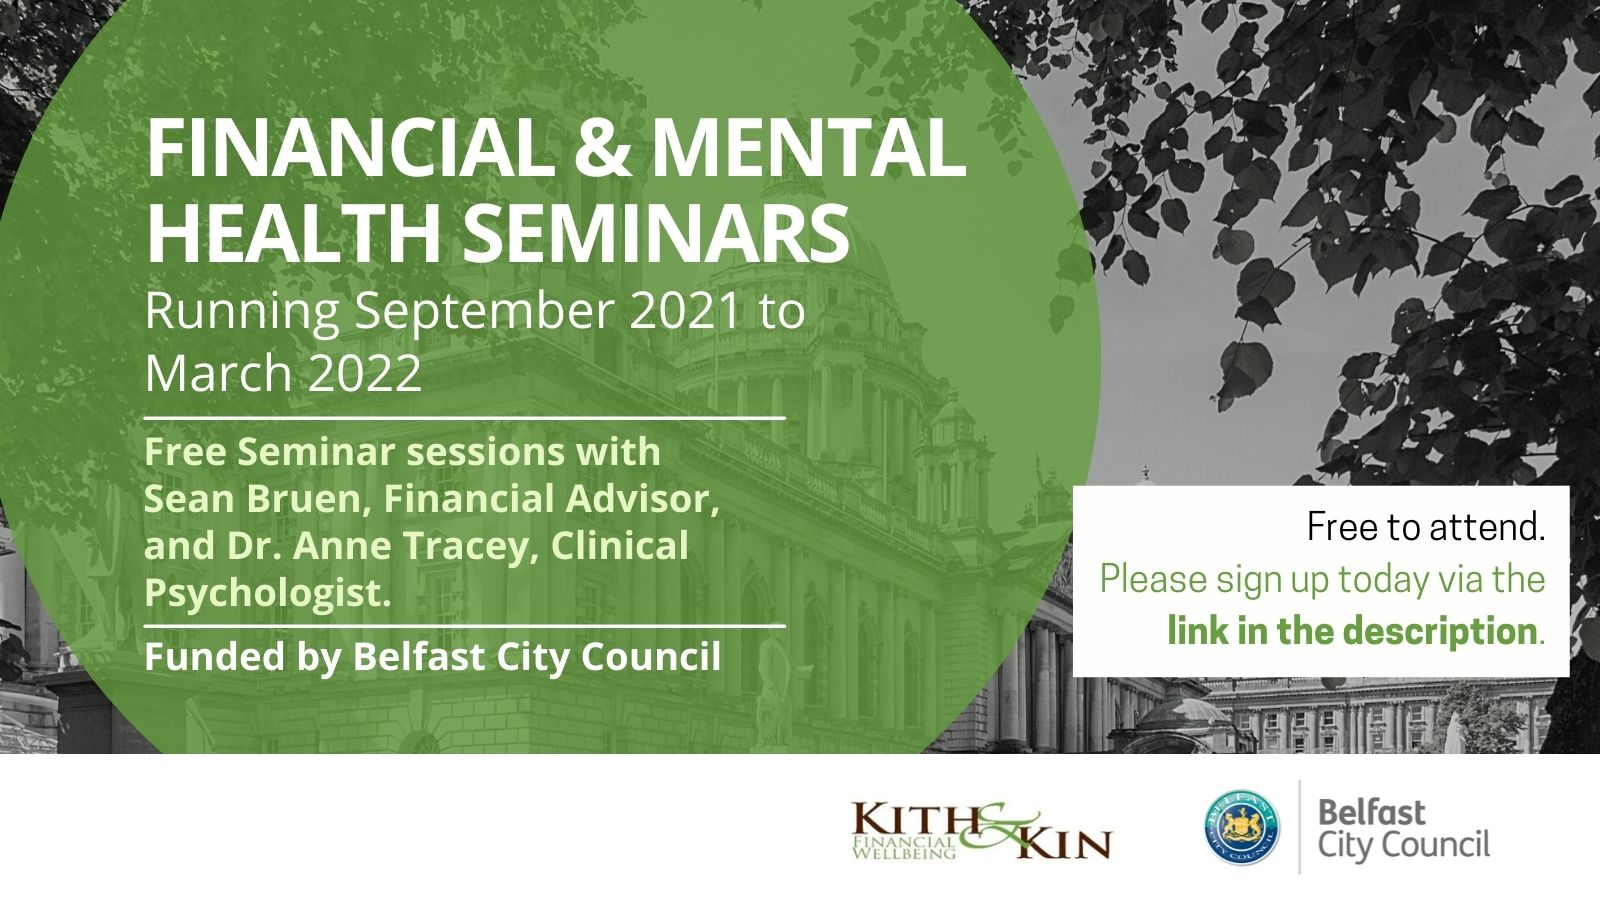 Click here to learn more about the Financial & Mental First Aid webinar